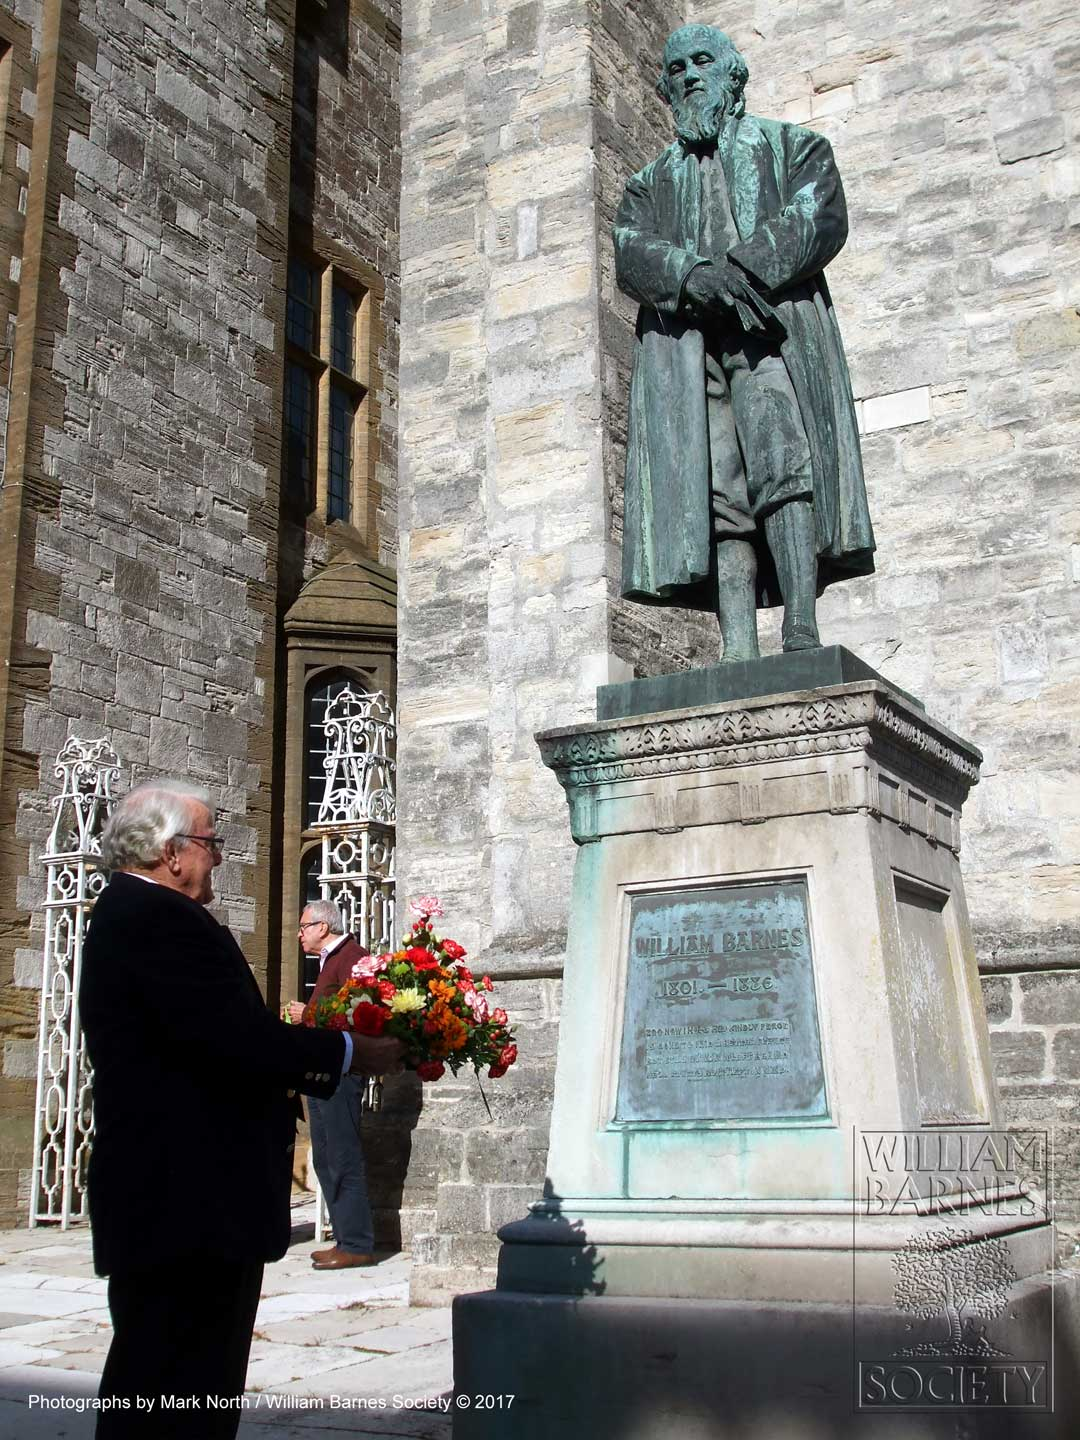 The wreath was laid at the foot of William Barnes statue by David Downton